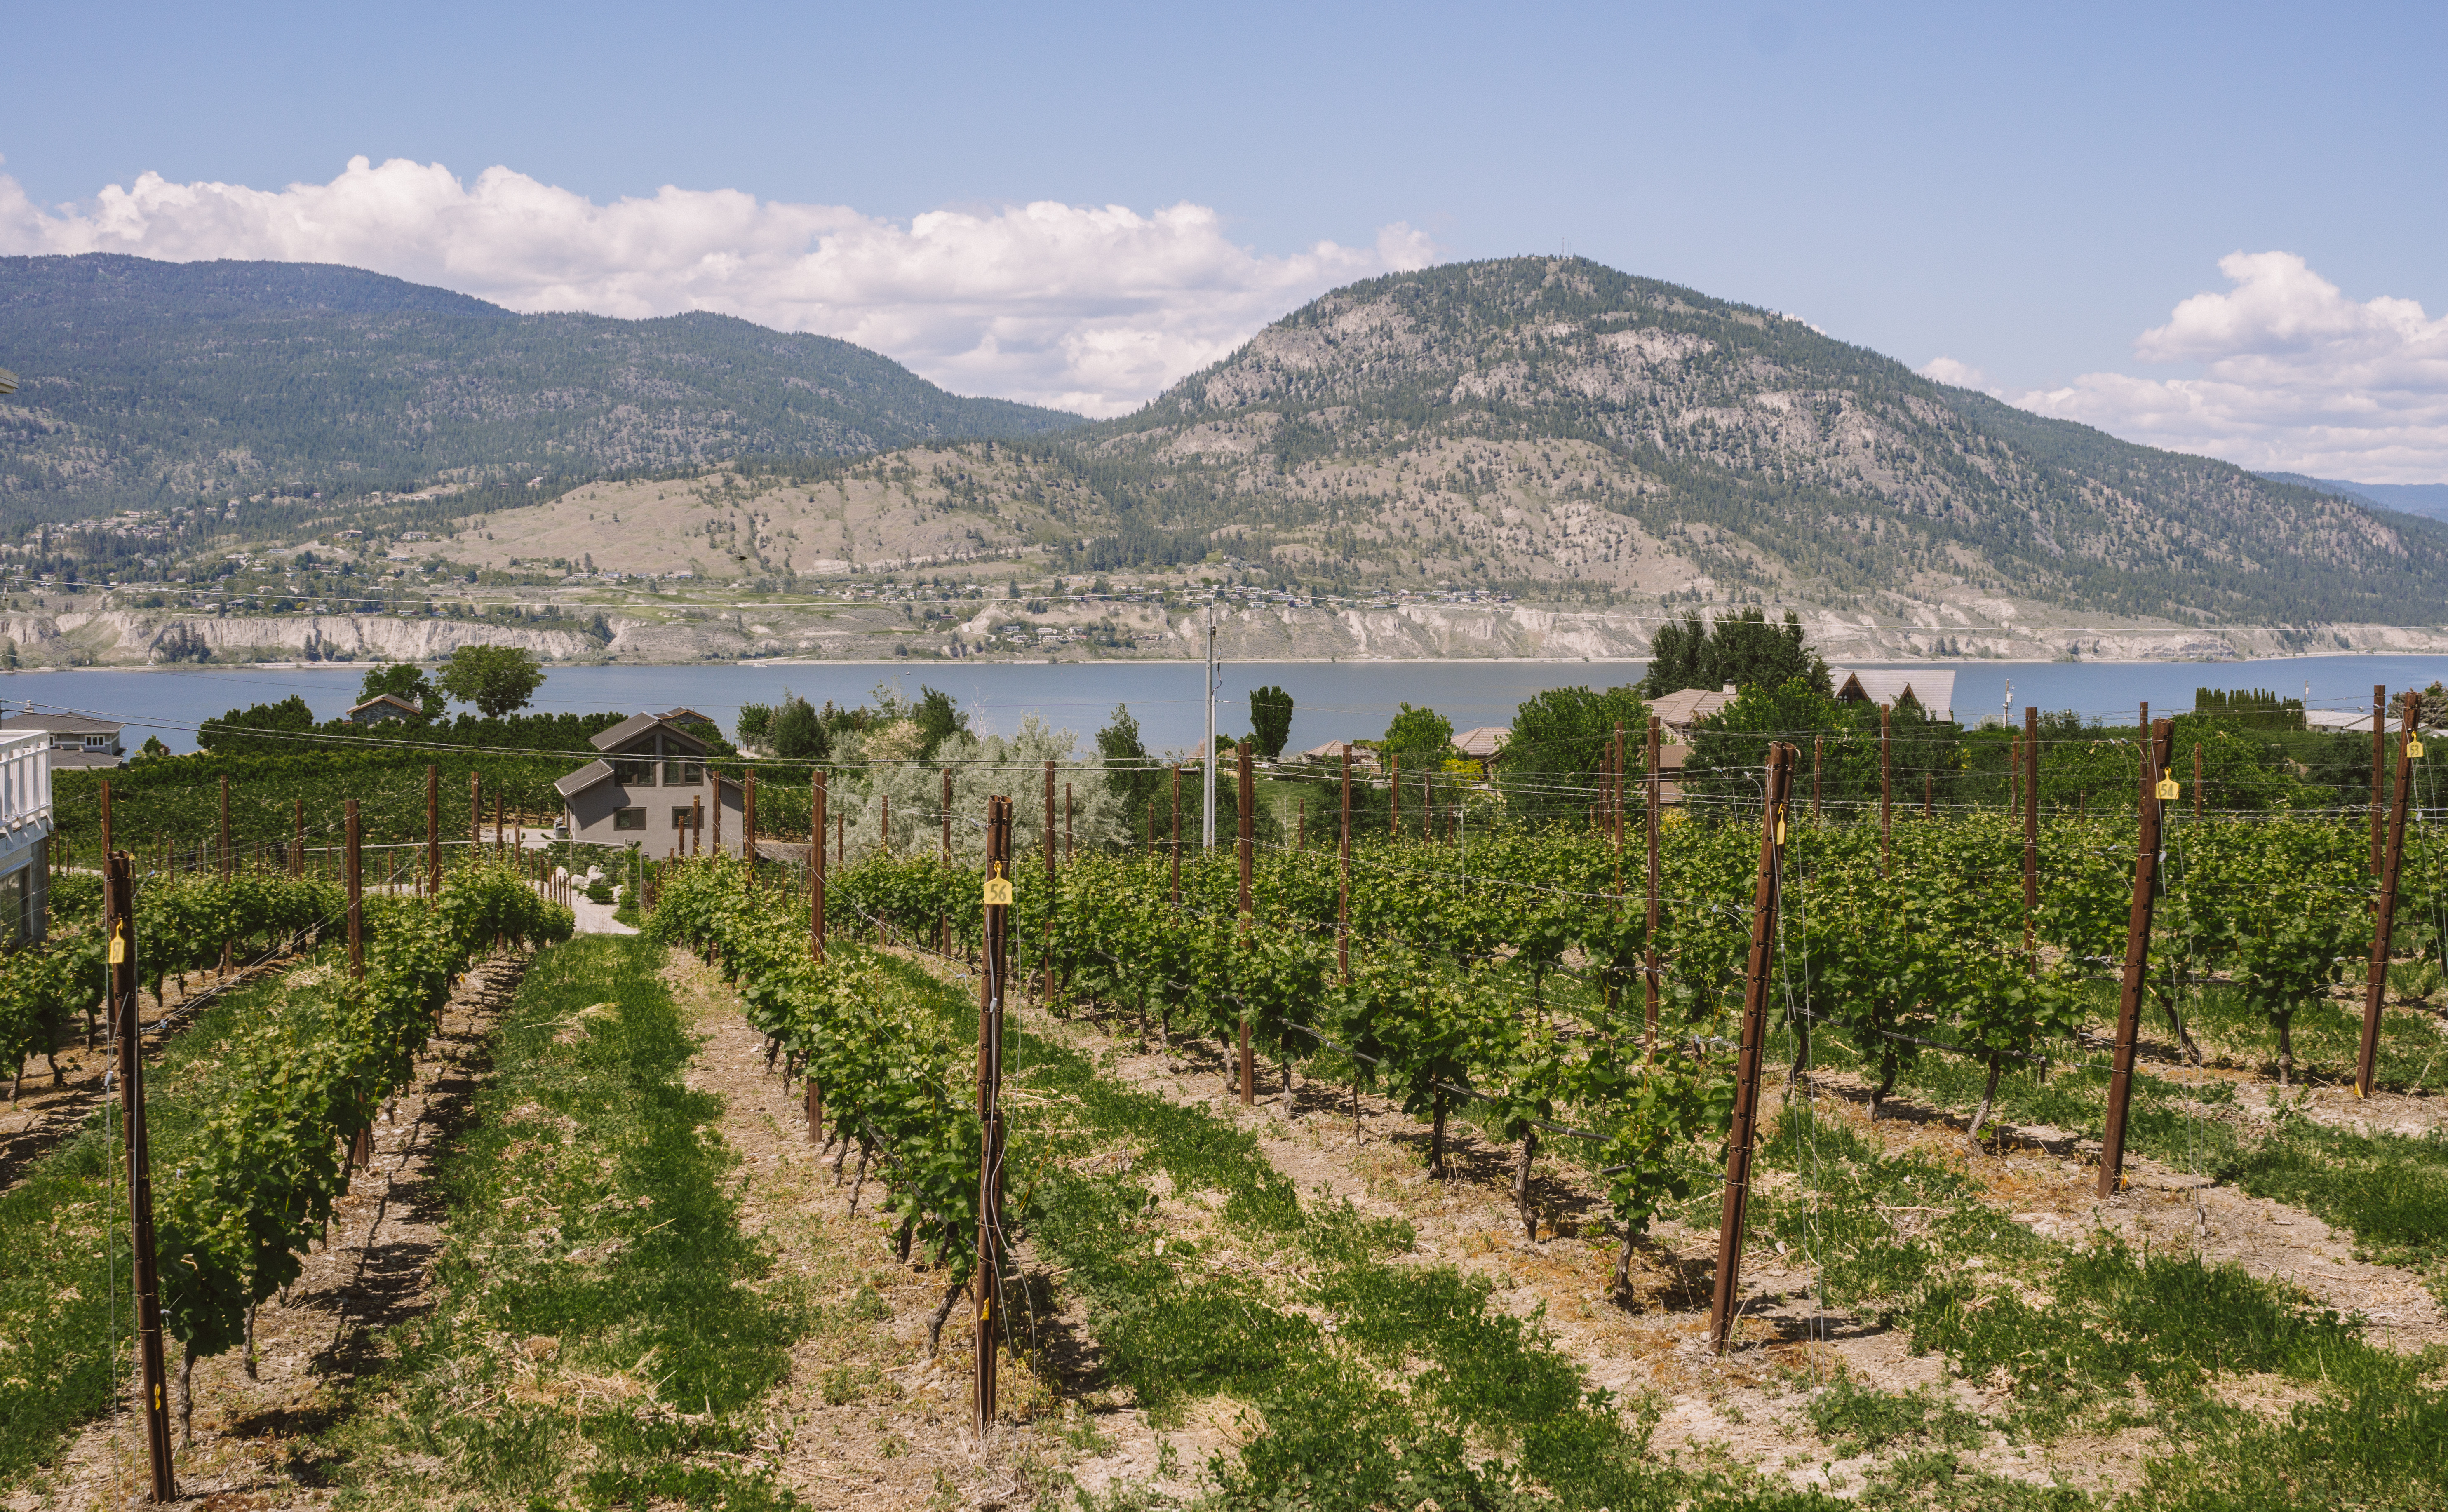 Wineries in the Okanagan Valley, Canada